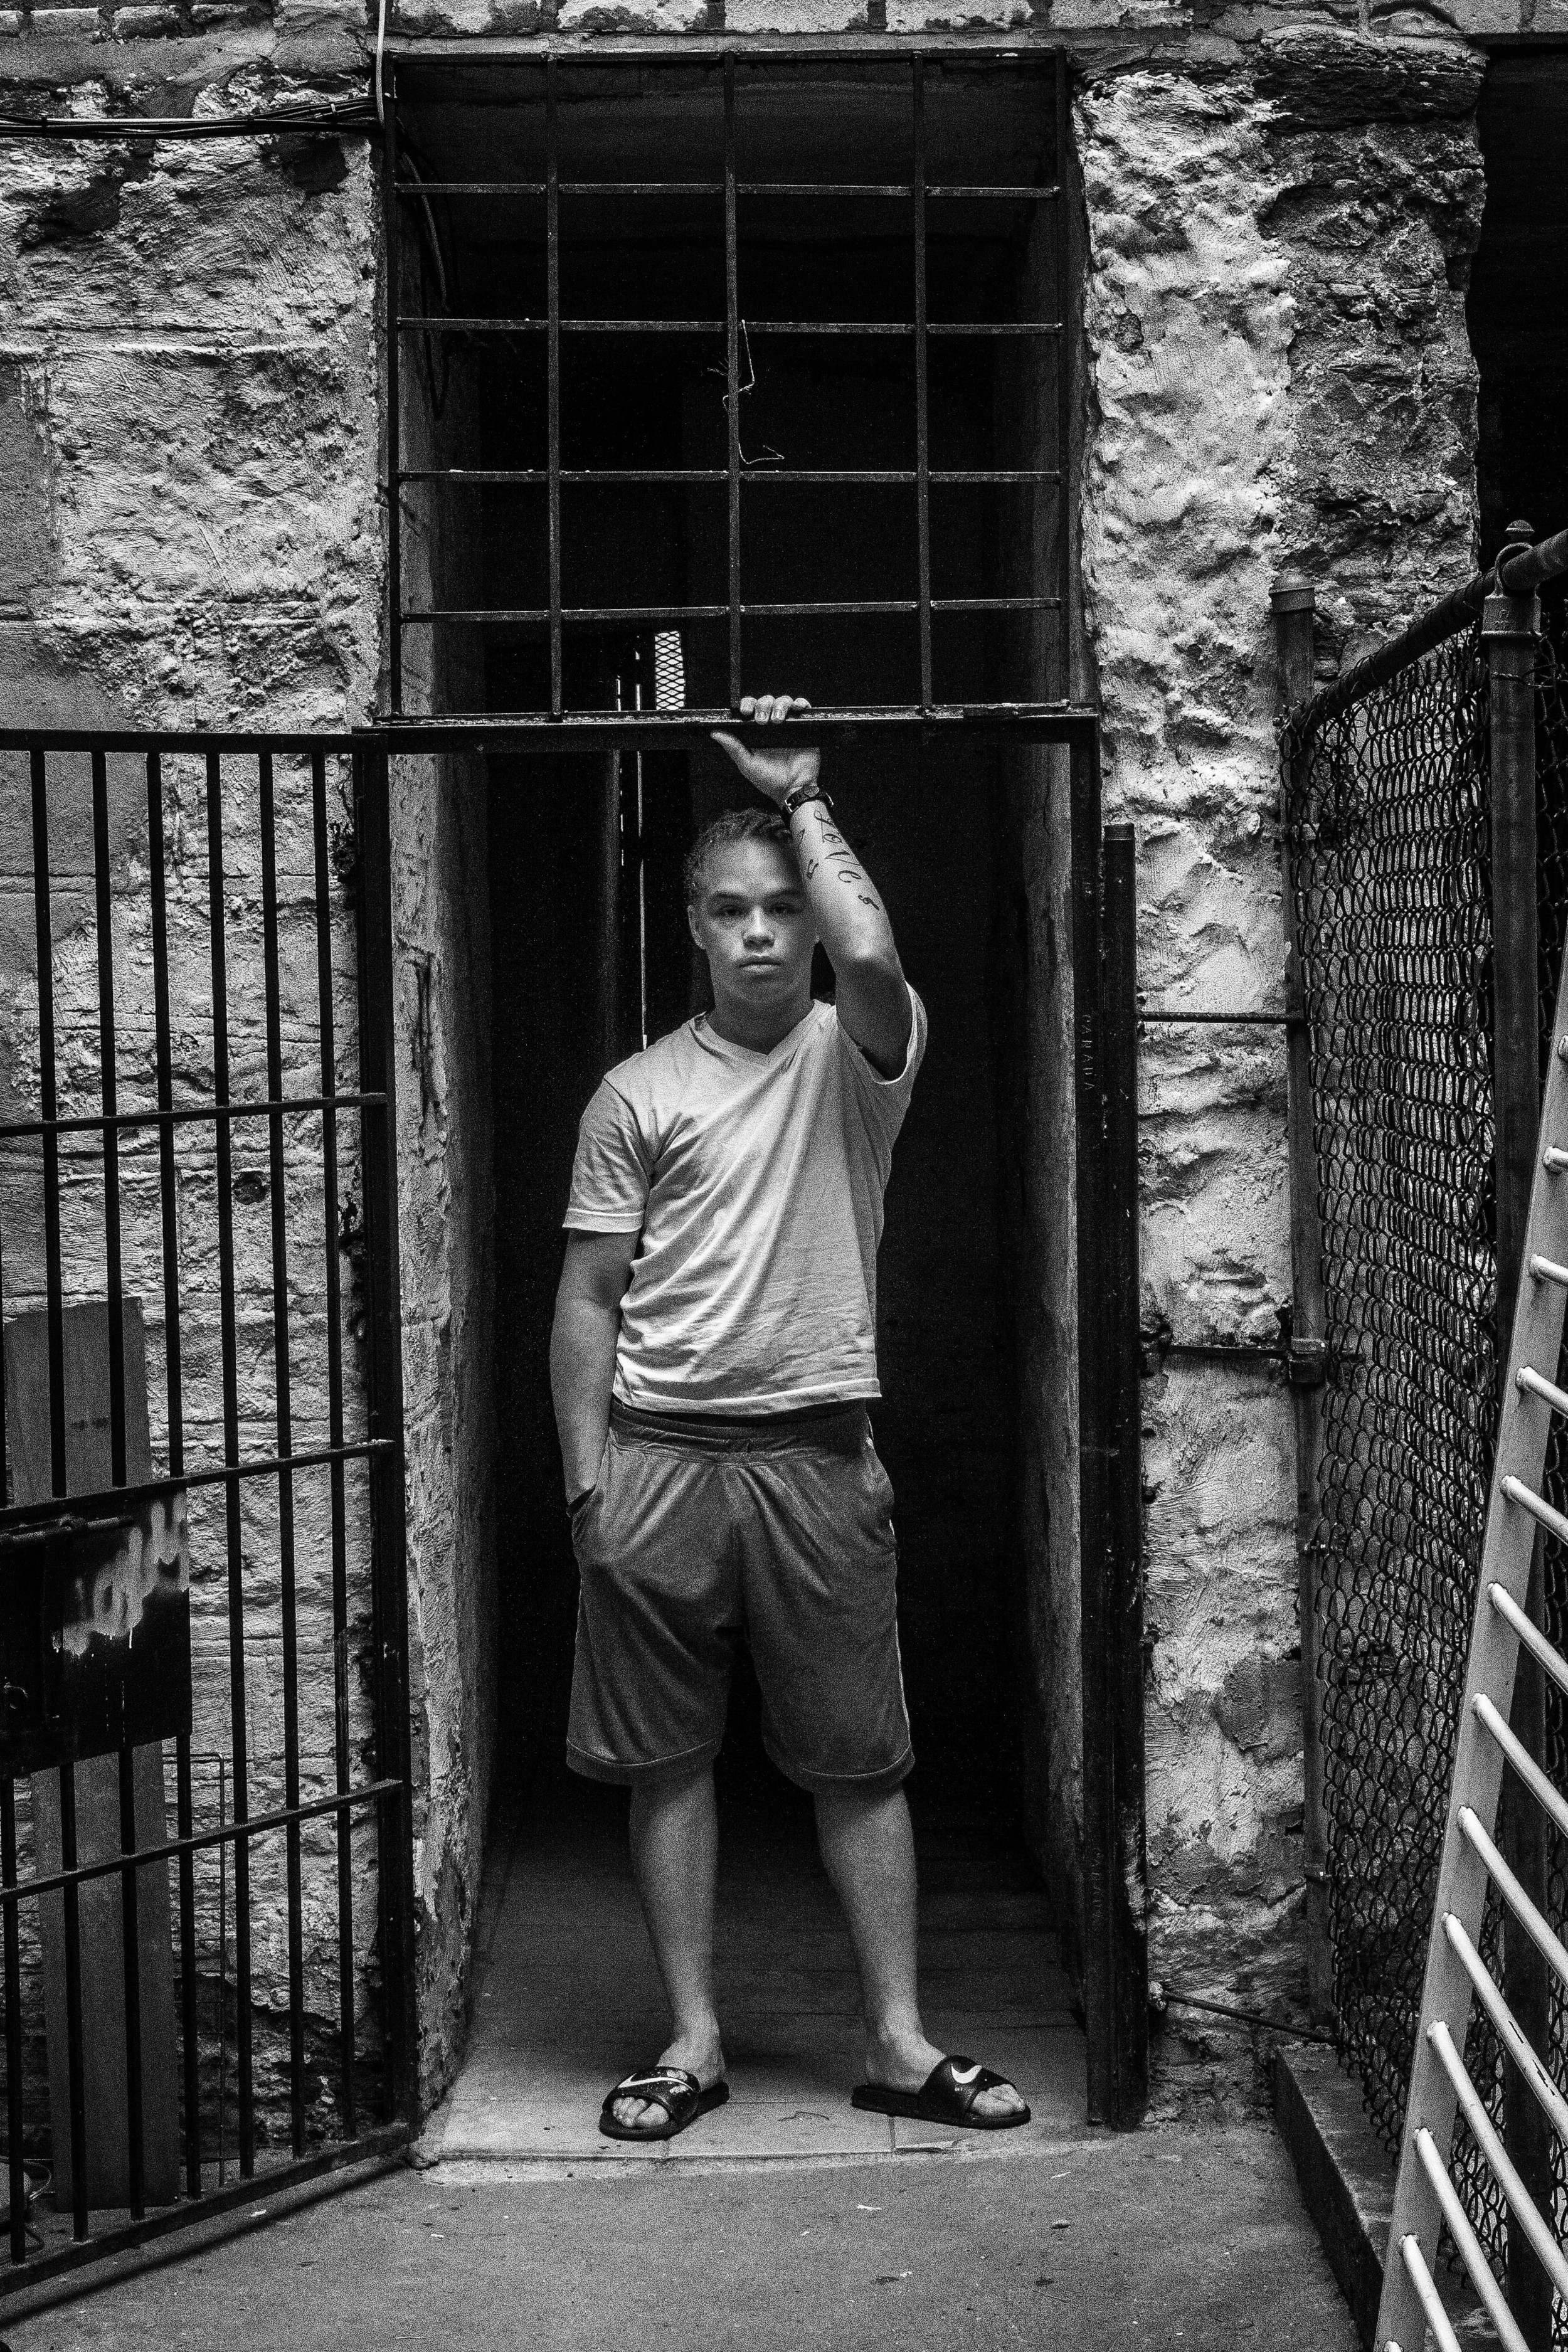 LOVE LIVES. Tim. Hunts Point, the Bronx, NYC. August 2012.